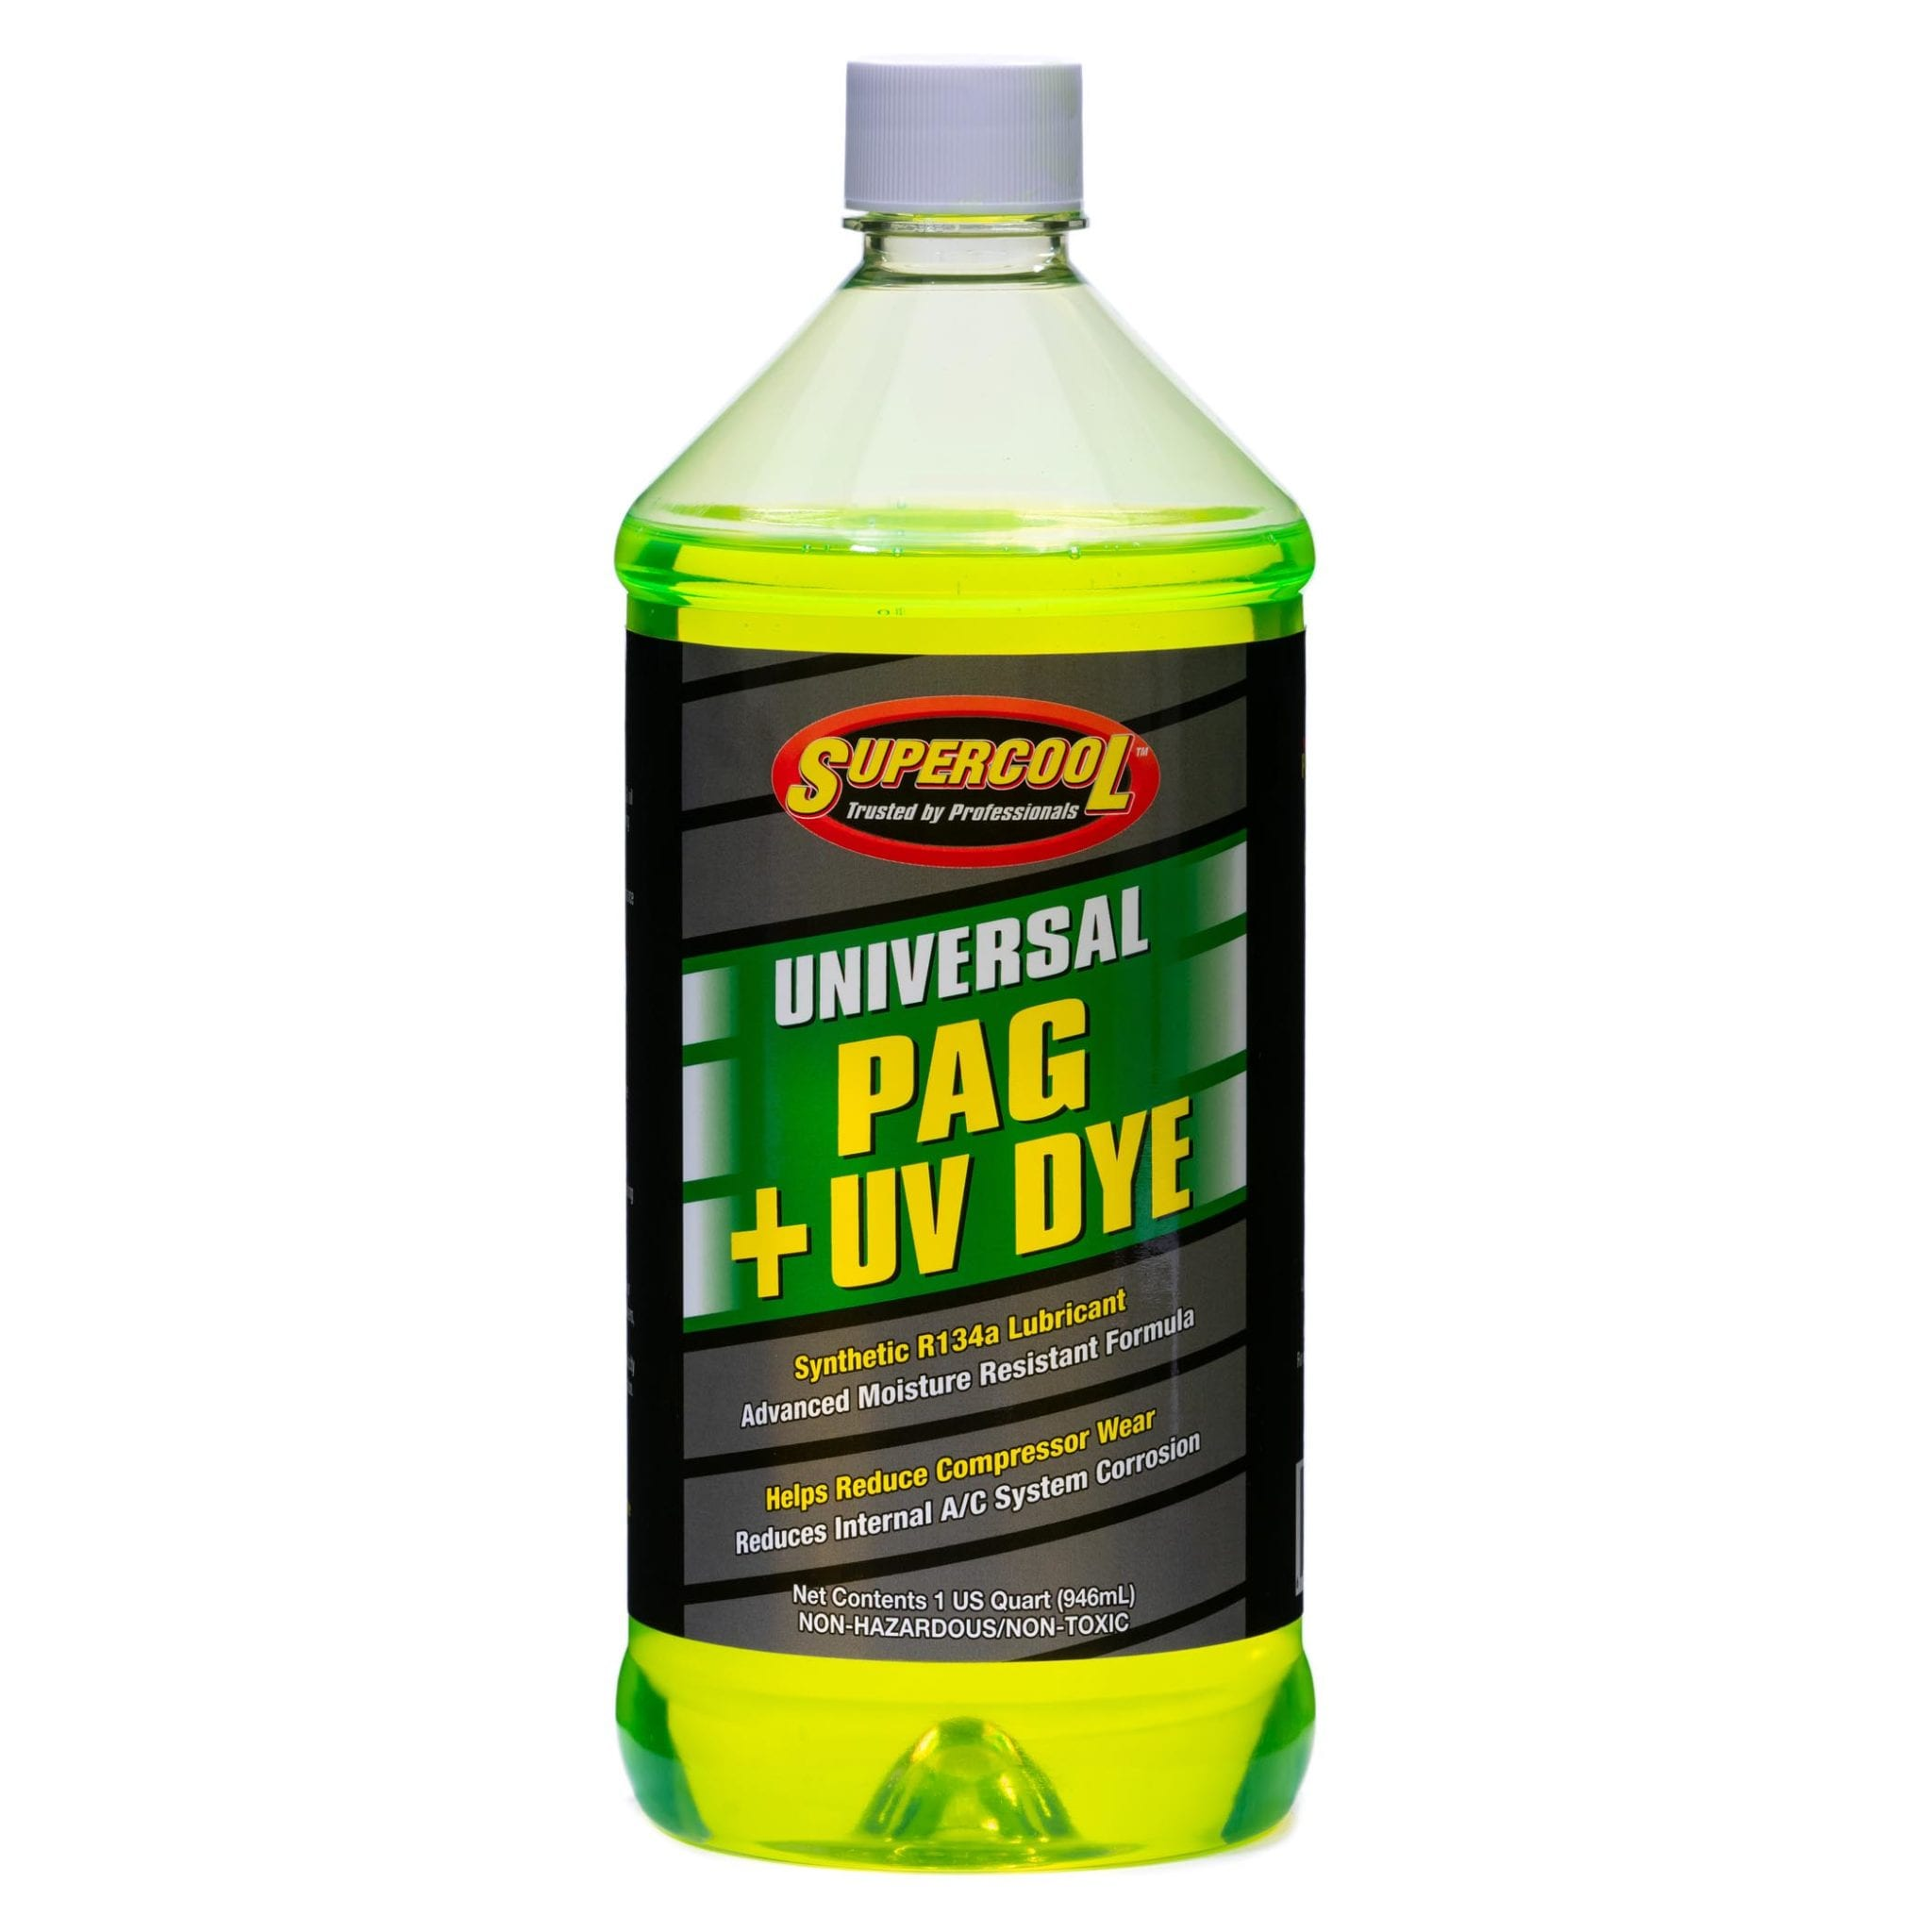 Universal PAG Oil with U/V Dye Quart